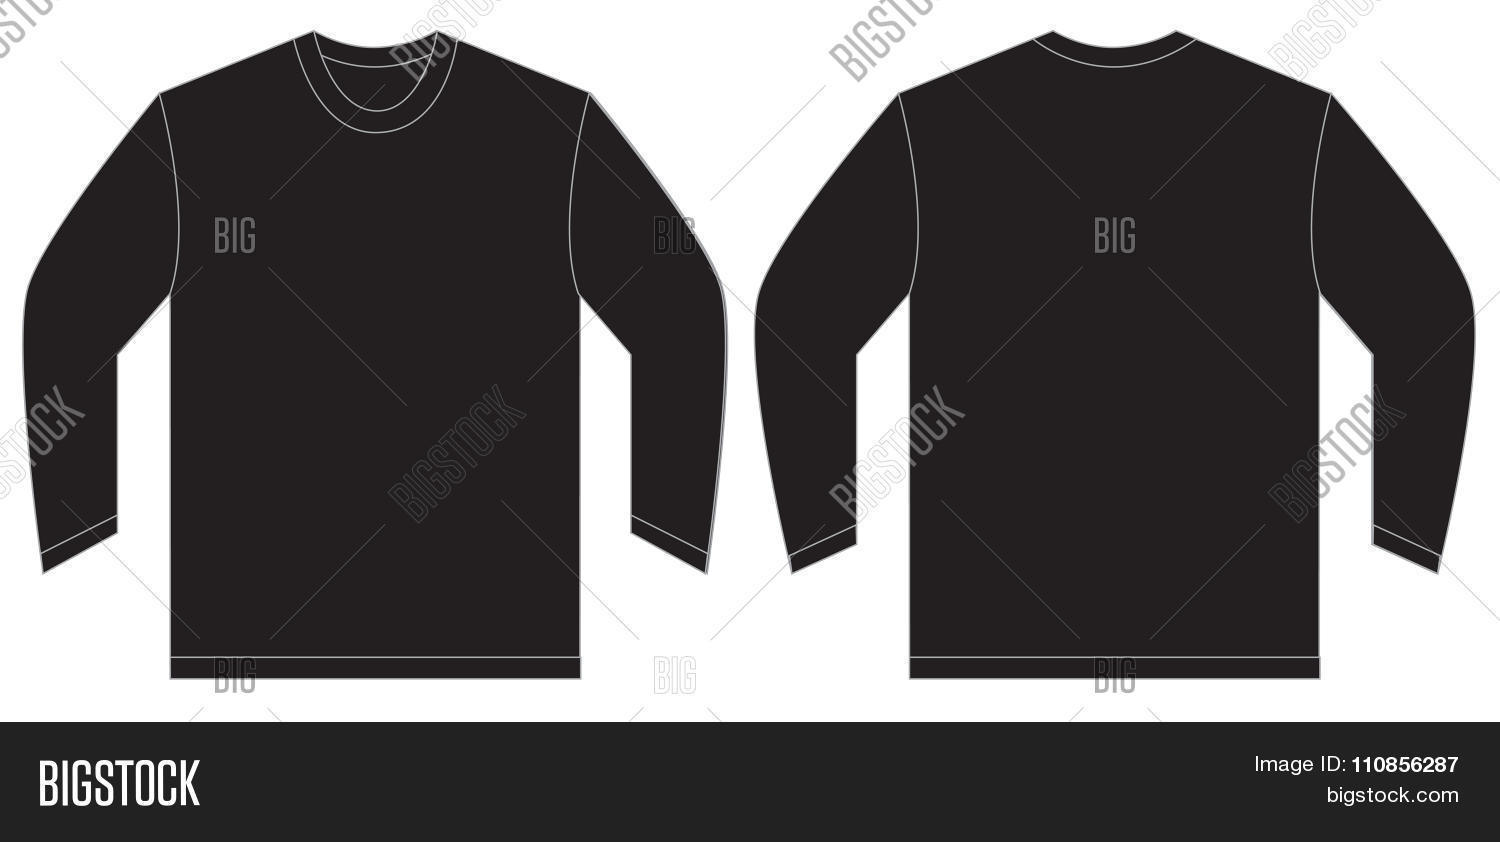 Black t shirt design template - Black Long Sleeve T Shirt Design Template